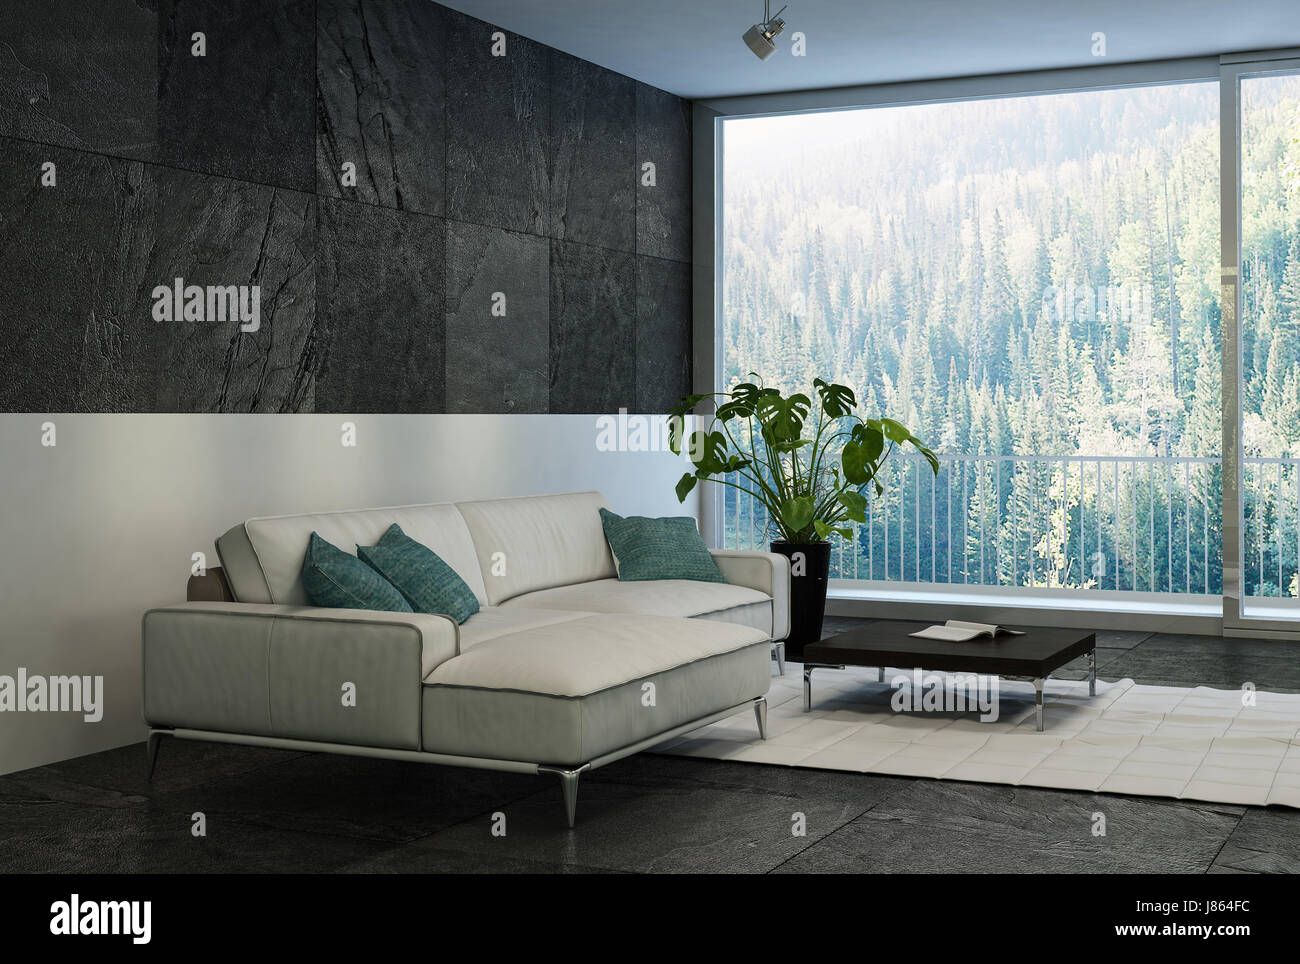 comfortable big living room living. Modern Comfortable Living Room With A Forest View Through Large Floor To Ceiling Glass Windows Couch And Potted Plant In Black Big F